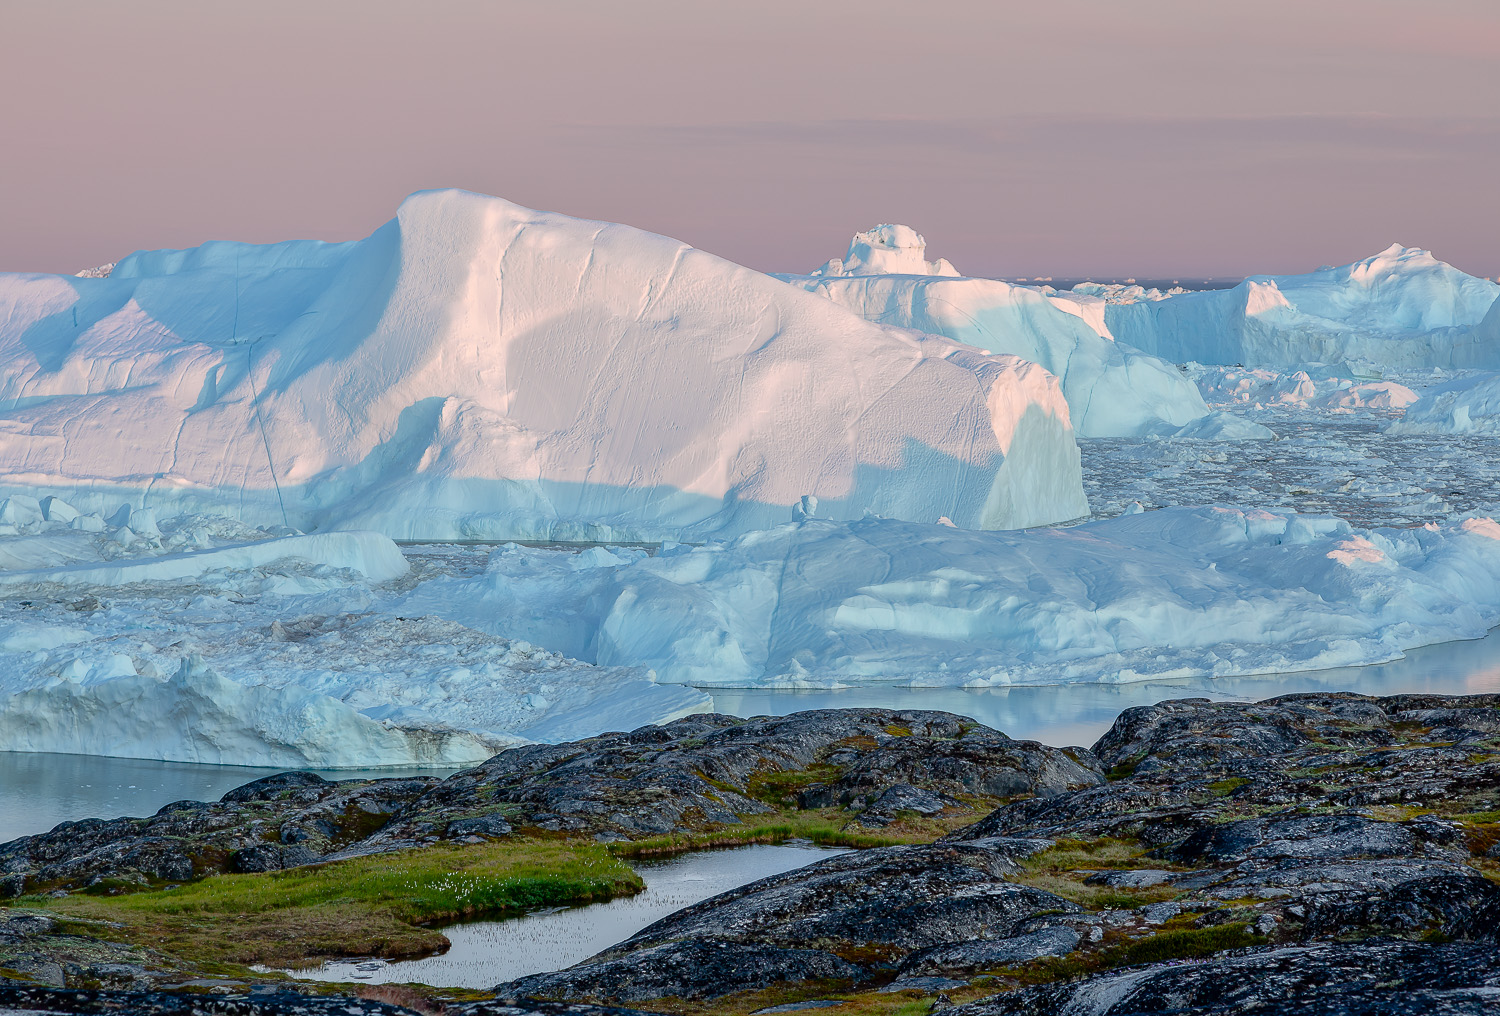 Rock and Ice, Ilulissat Icefjord, Greenland